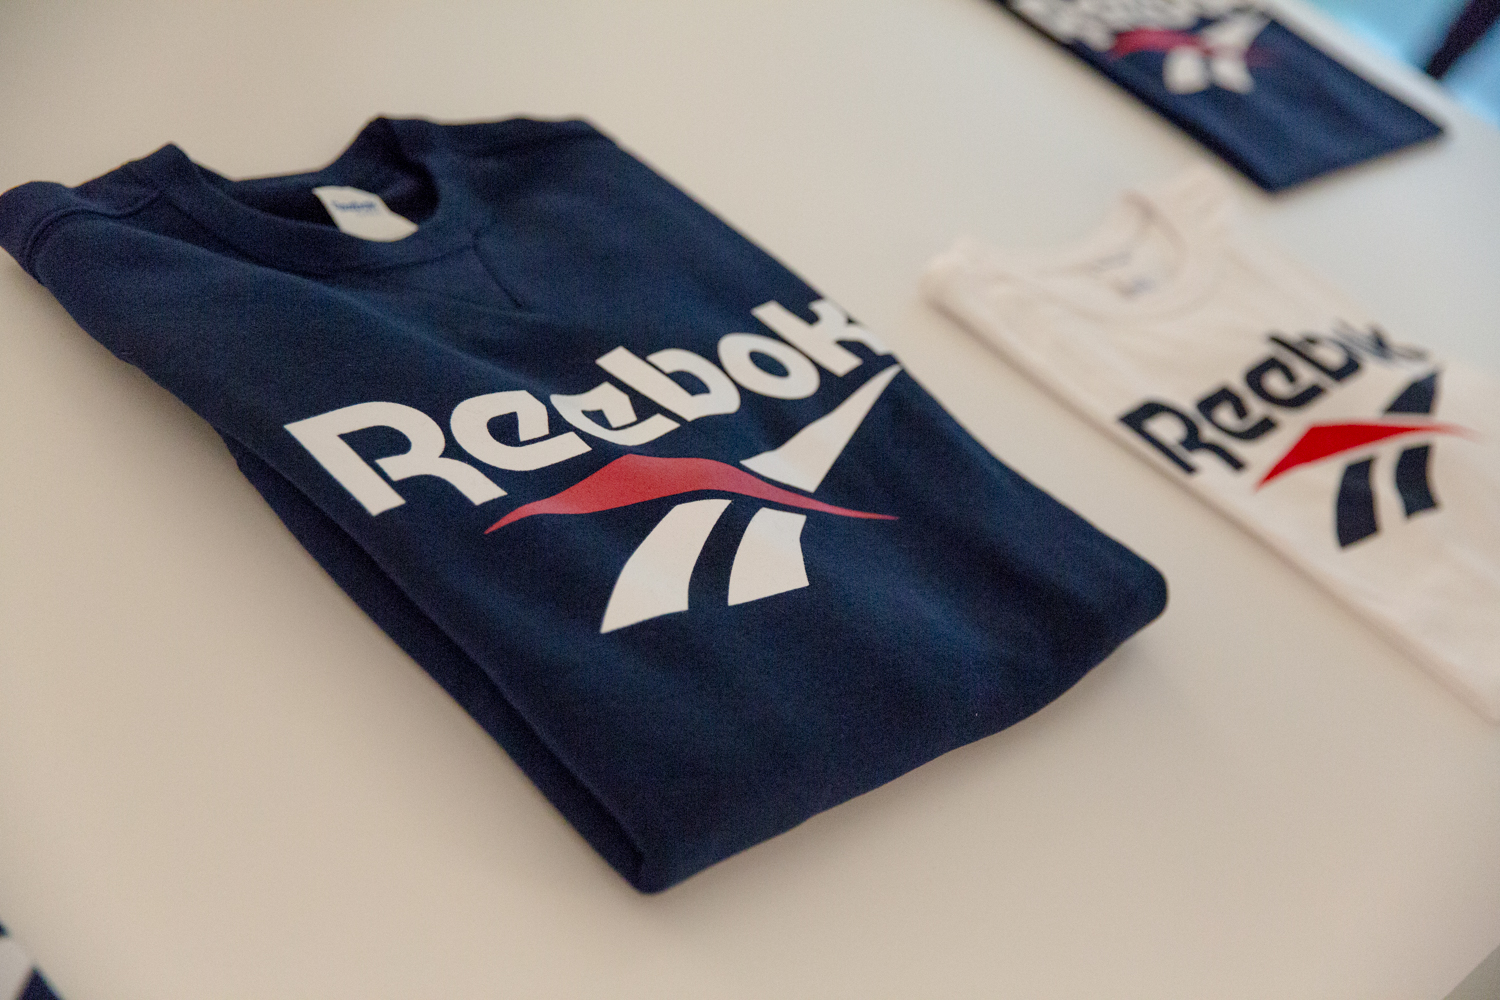 Reebok clothing store